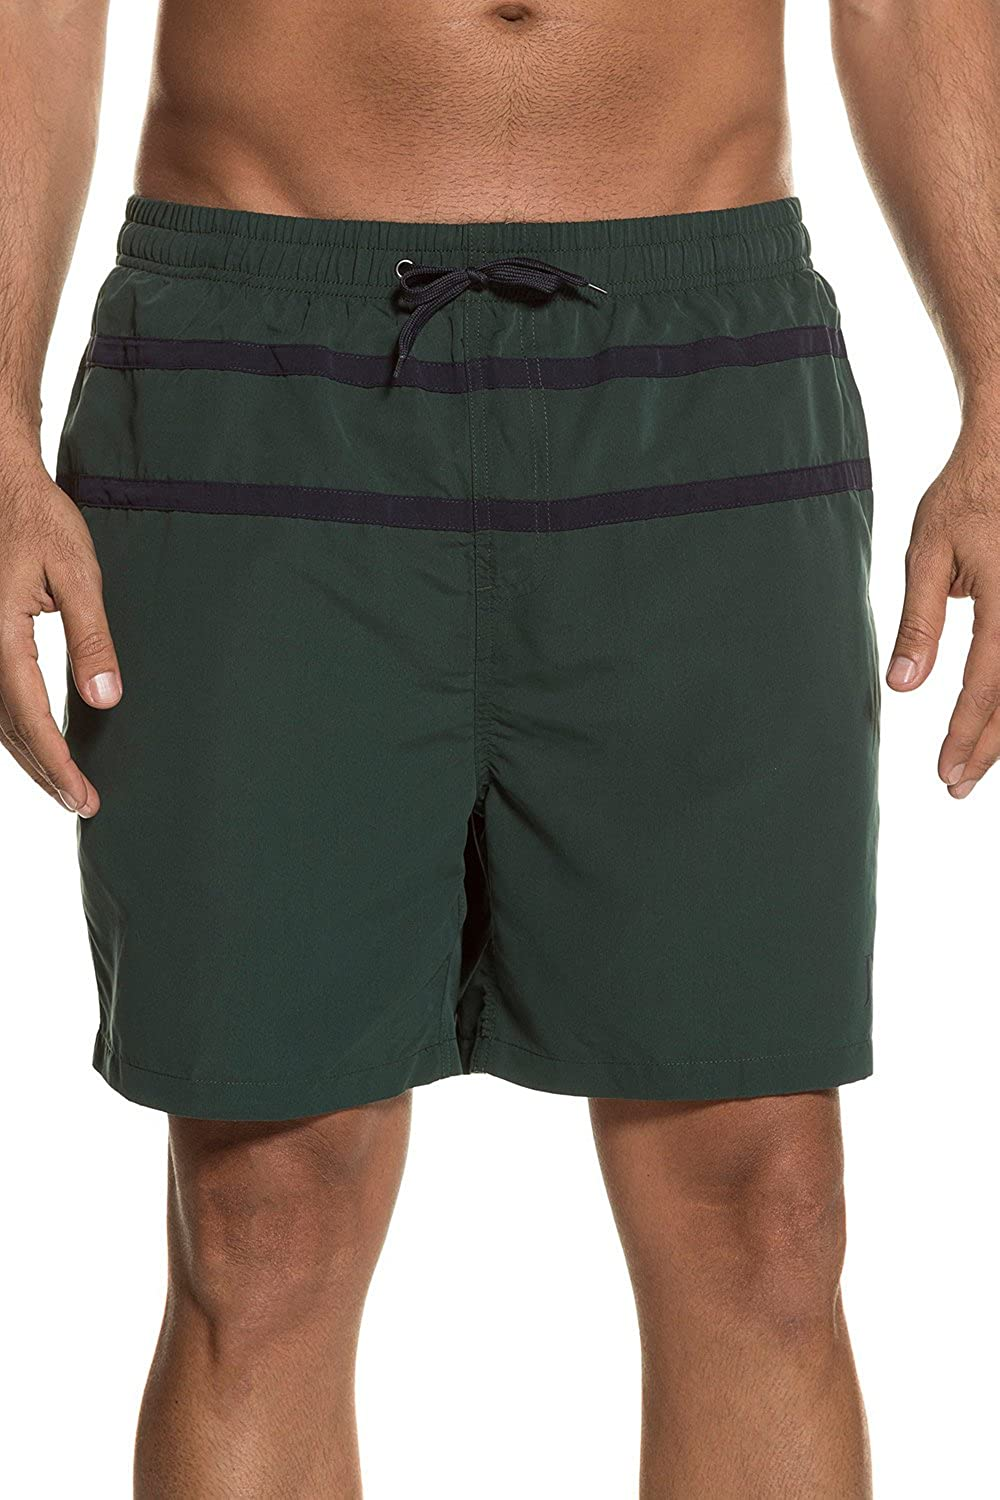 JP 1880 Men's Big & Tall Contrast Stripe Quick Dry Swim Shorts 711345